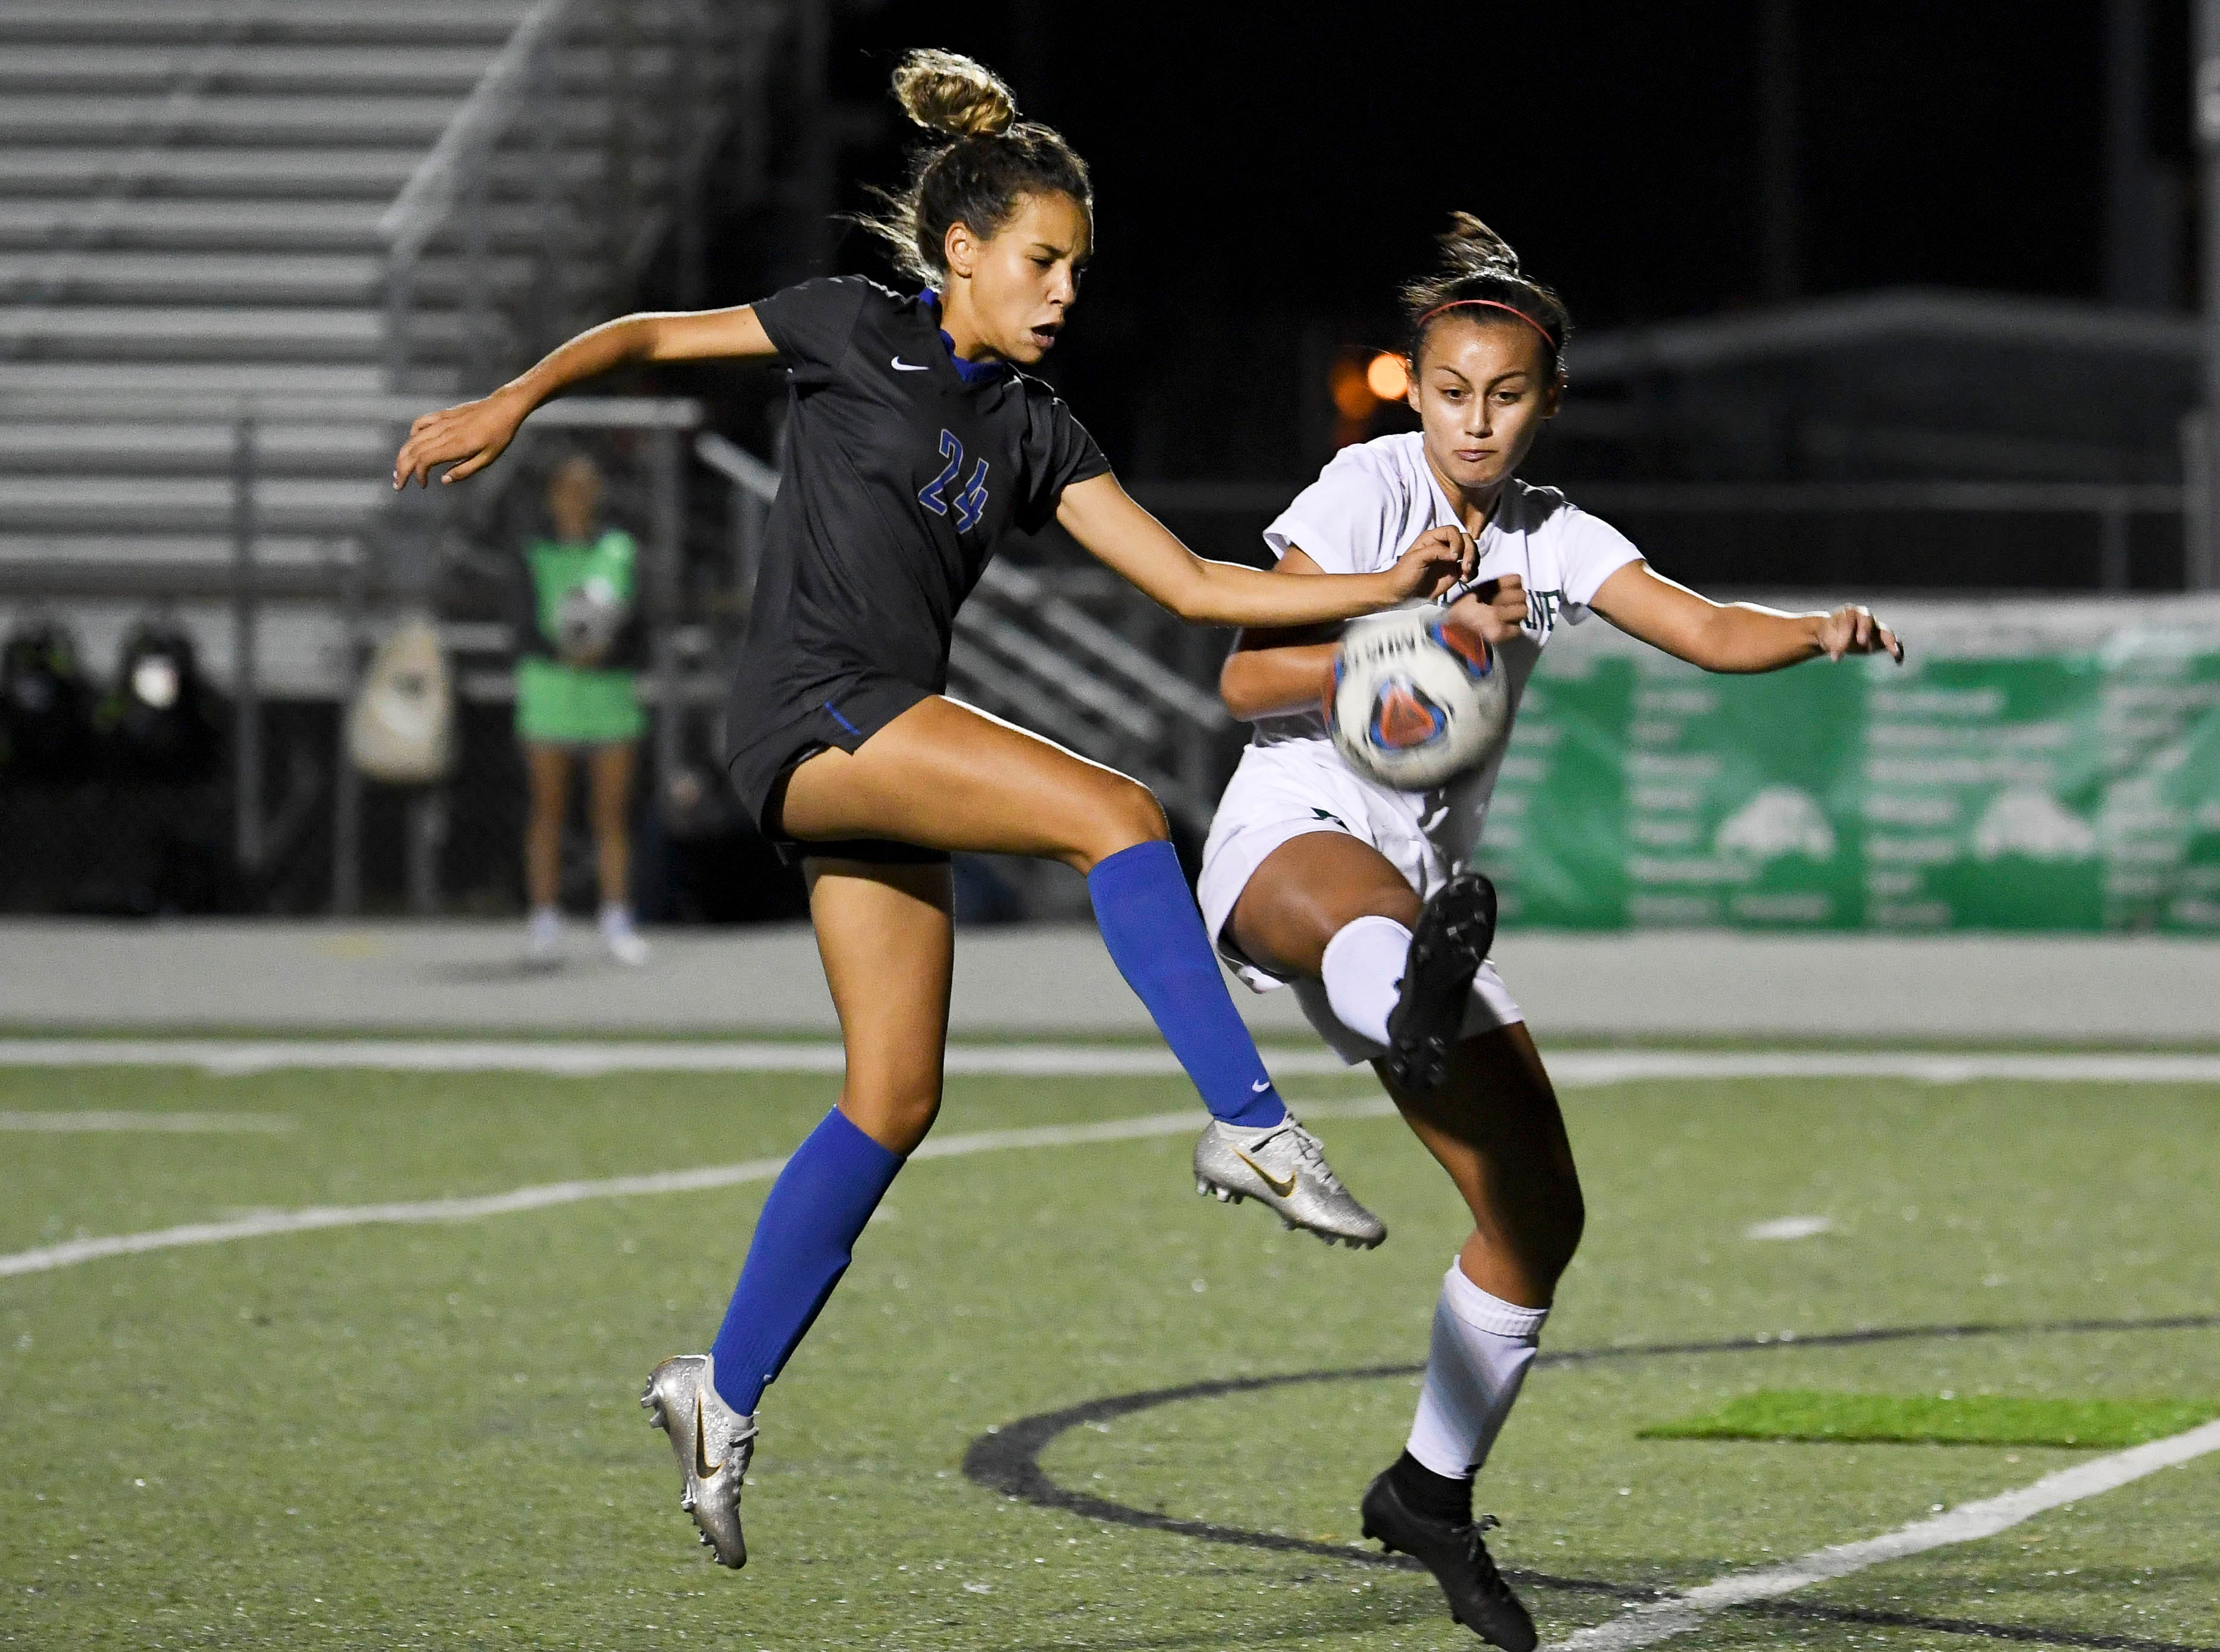 Fabiola Melendez of Cypress Bay and Allysyn Brust of Melbourne battle for control of the ball during Thursday's game in Melbourne